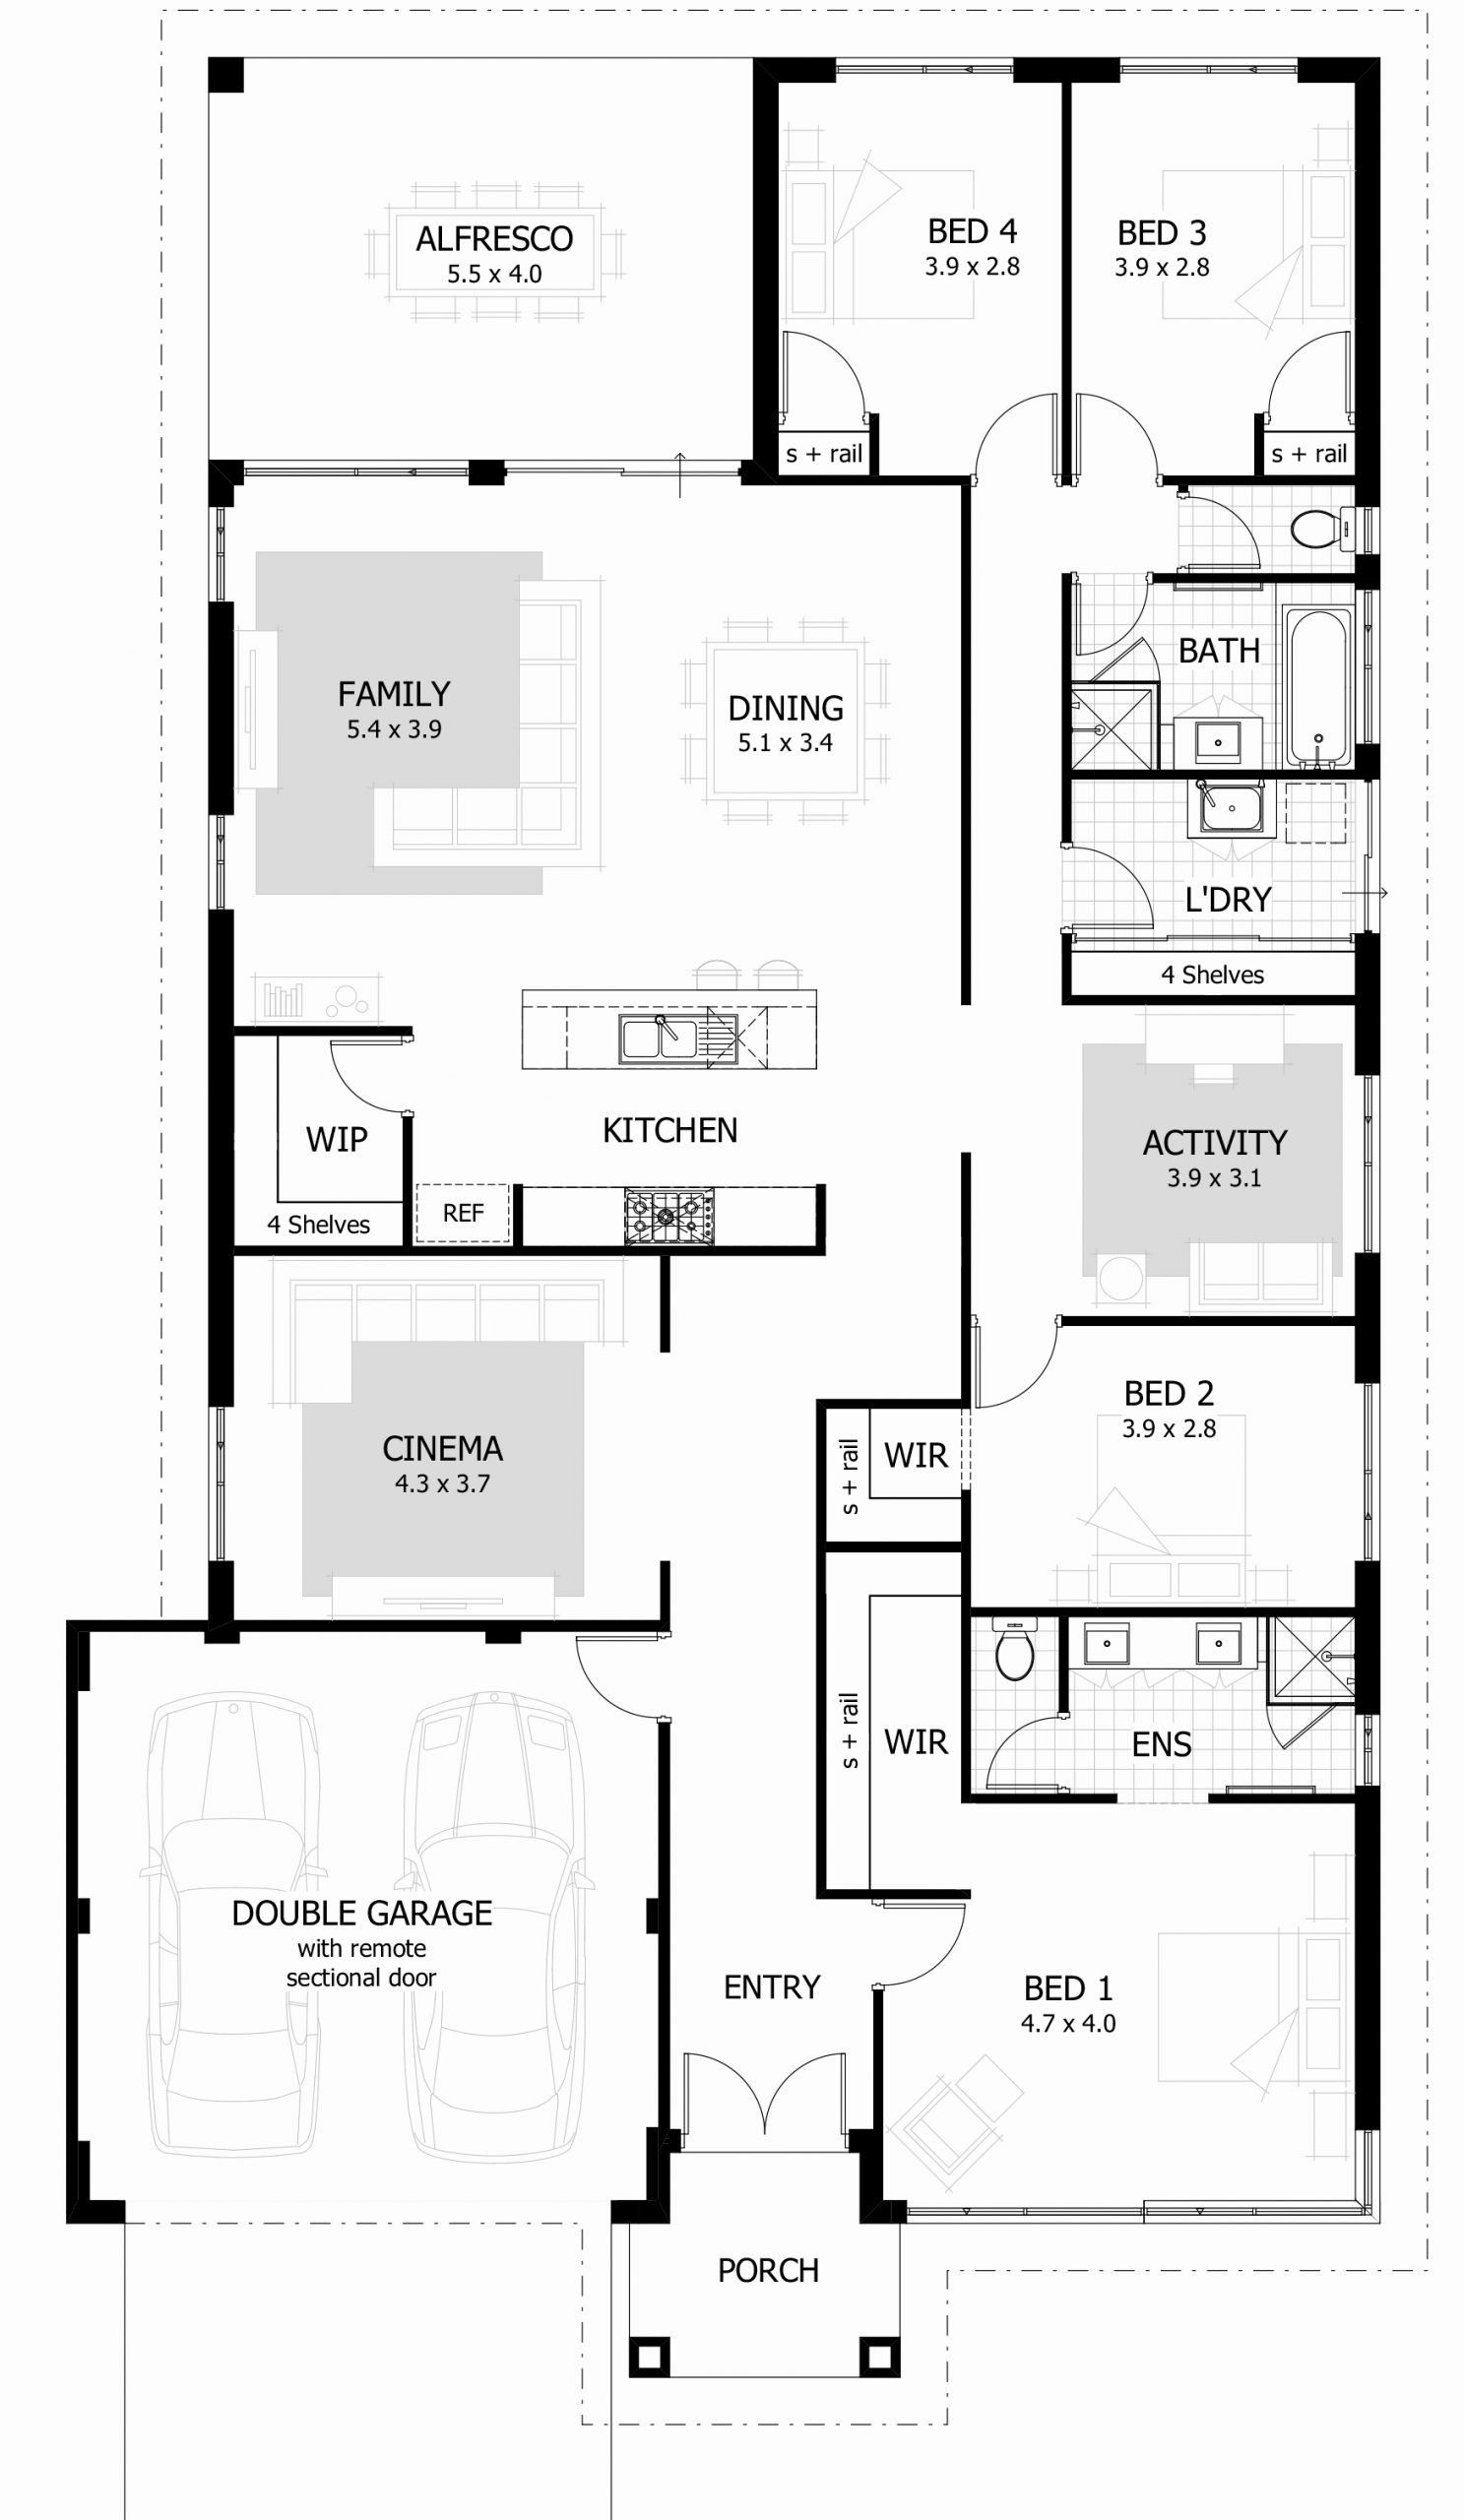 Simple Four Bedroom House Plans Luxury Brilliant Four Bedroom House Plan Simple Idea Modern In 2020 Castle House Plans Four Bedroom House Plans 4 Bedroom House Plans